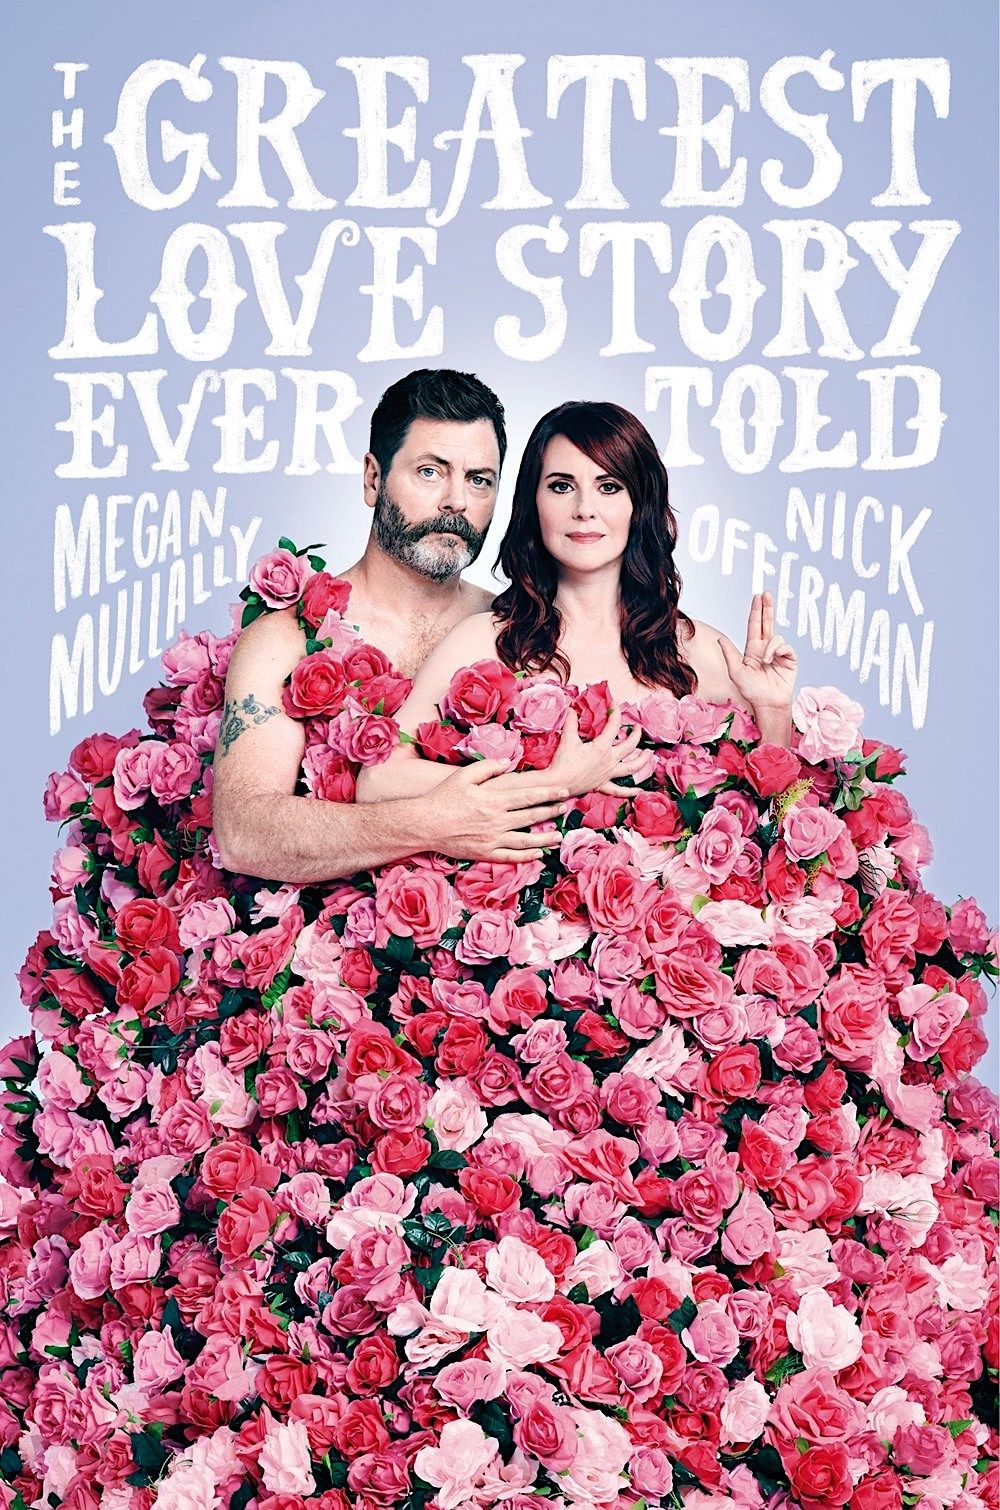 Book cover image of Nick Offerman & Megan Mullally under a blanket of pink roses.